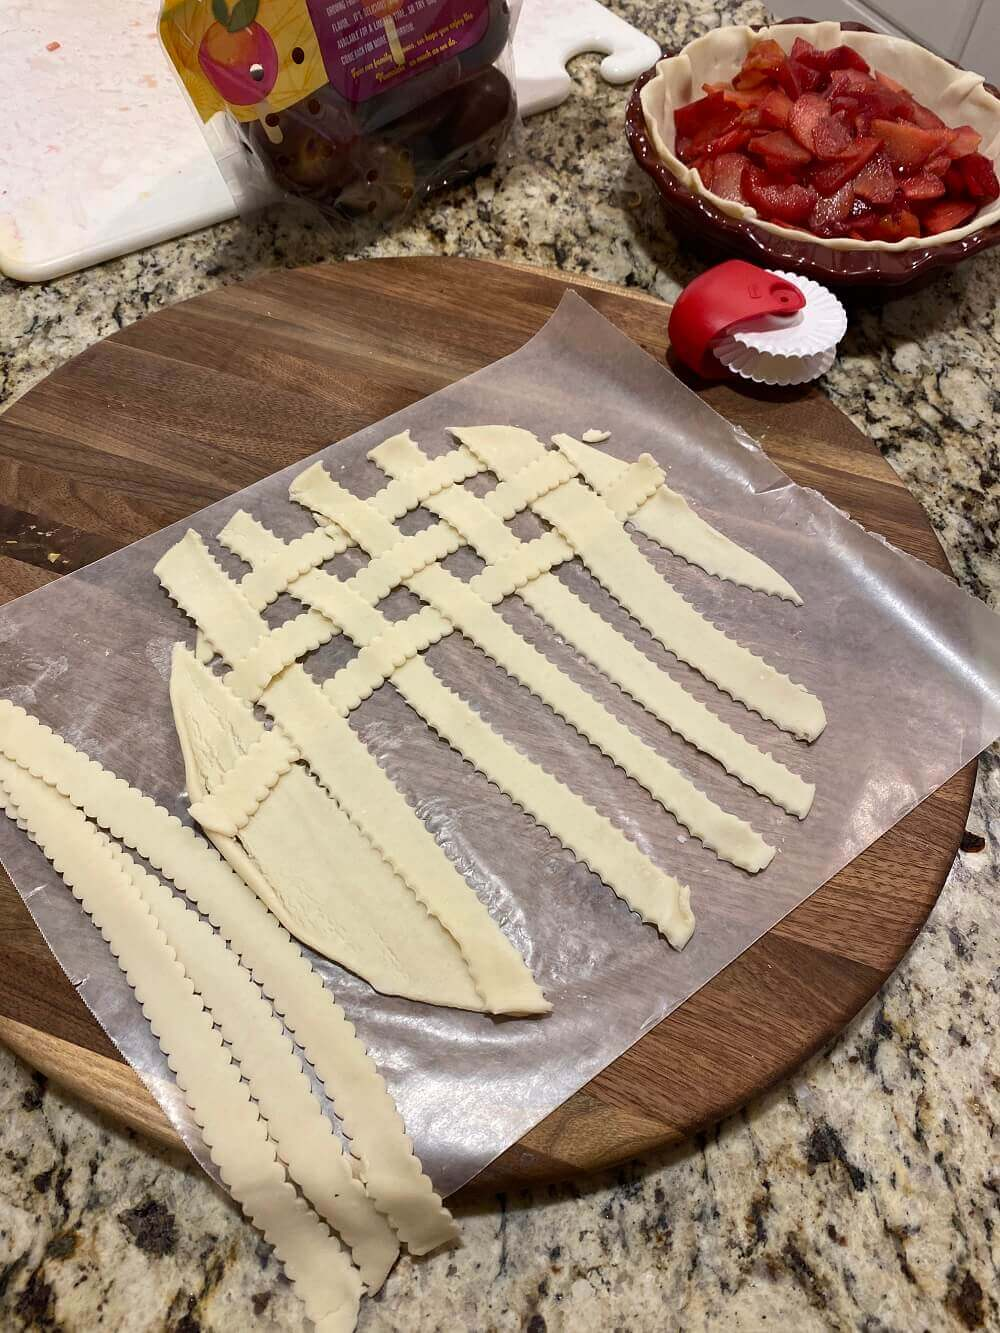 Slicing the lattice